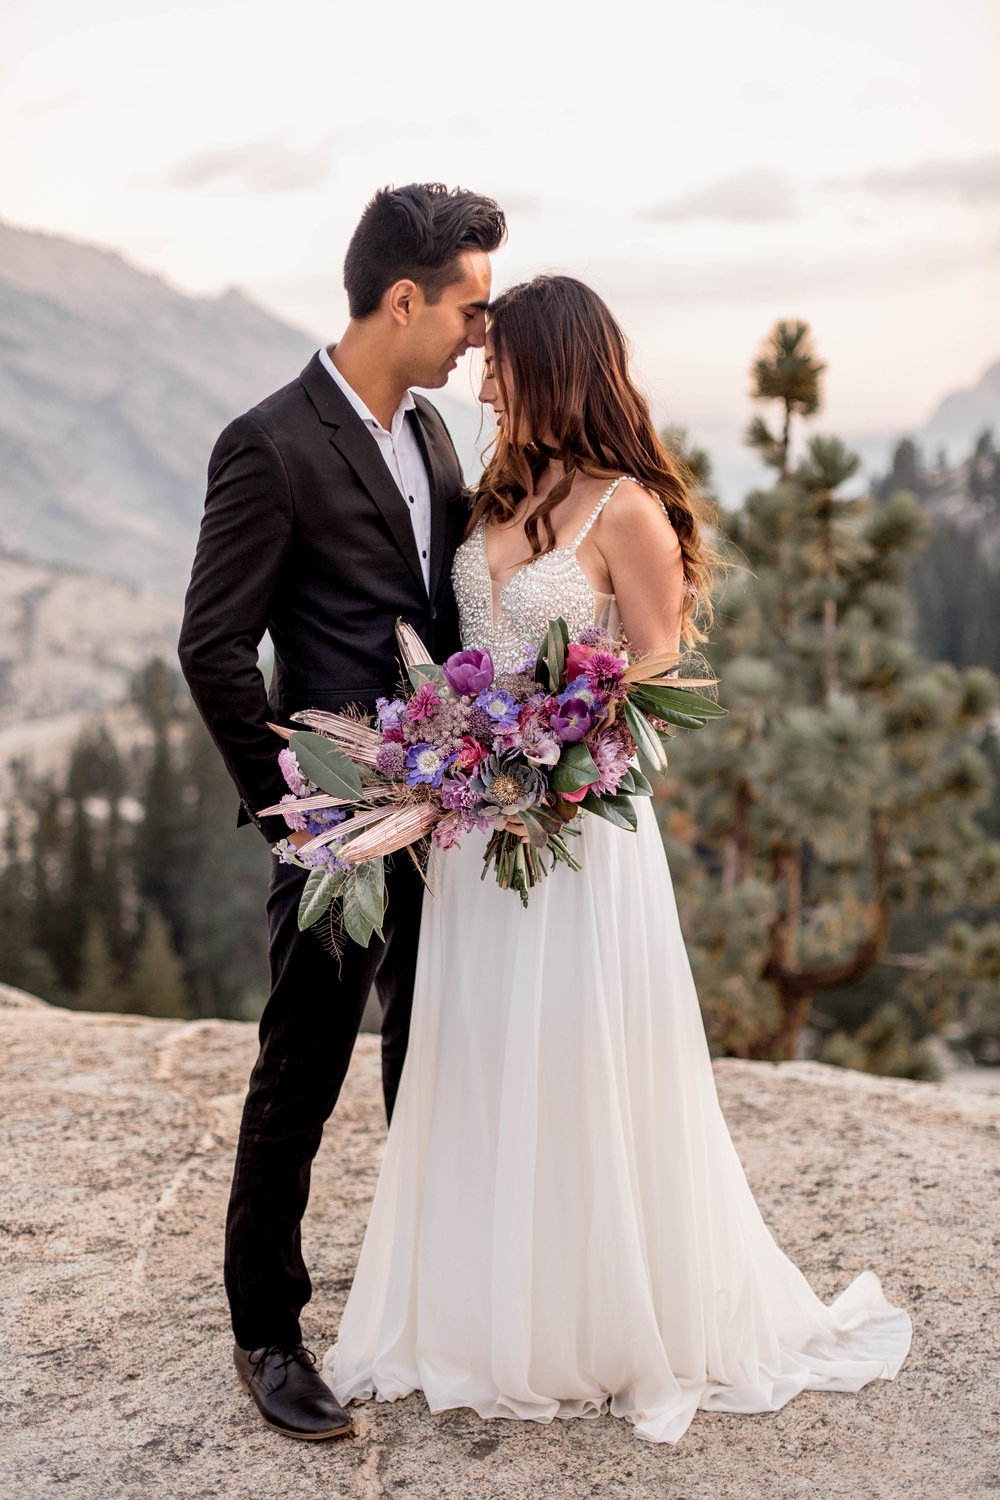 Nicole-Daacke-Photography-Yosemite-Aventurous-Elopement-Photographer-Photography-Authentic-Glam-Love-National-Parks-3.jpg